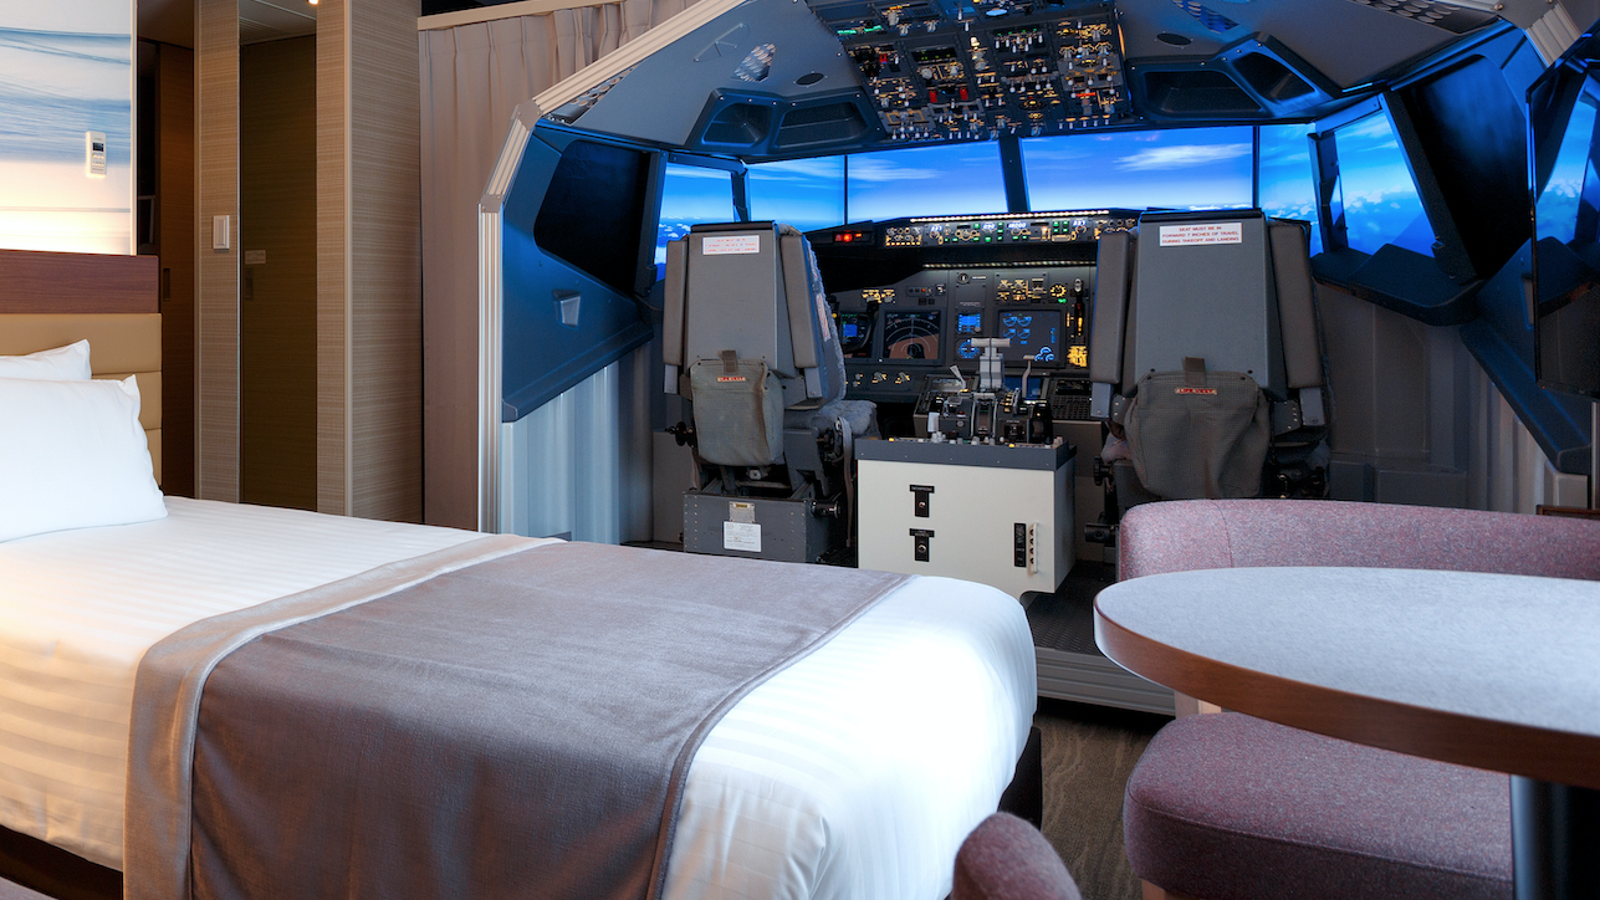 Enormous Flight Simulator Installed In Tokyo Hotel